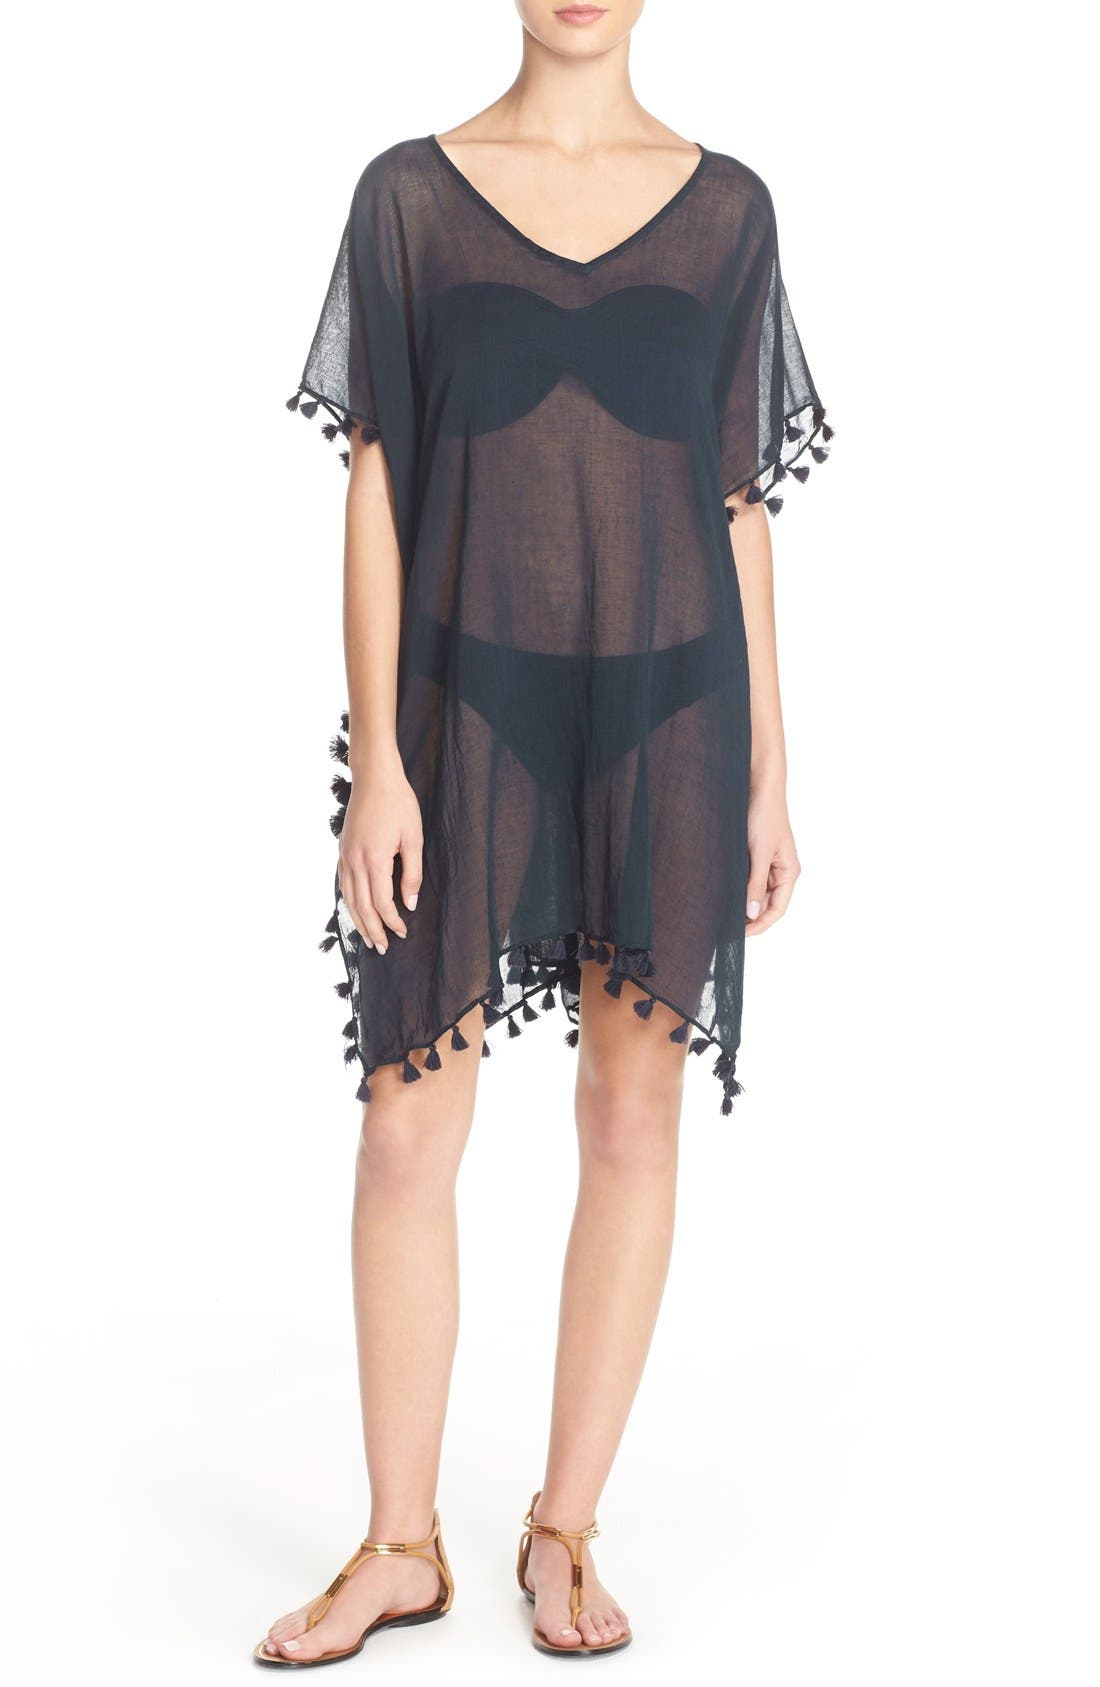 SEAFOLLY 'Amnesia' Cotton Gauze Cover-Up Caftan